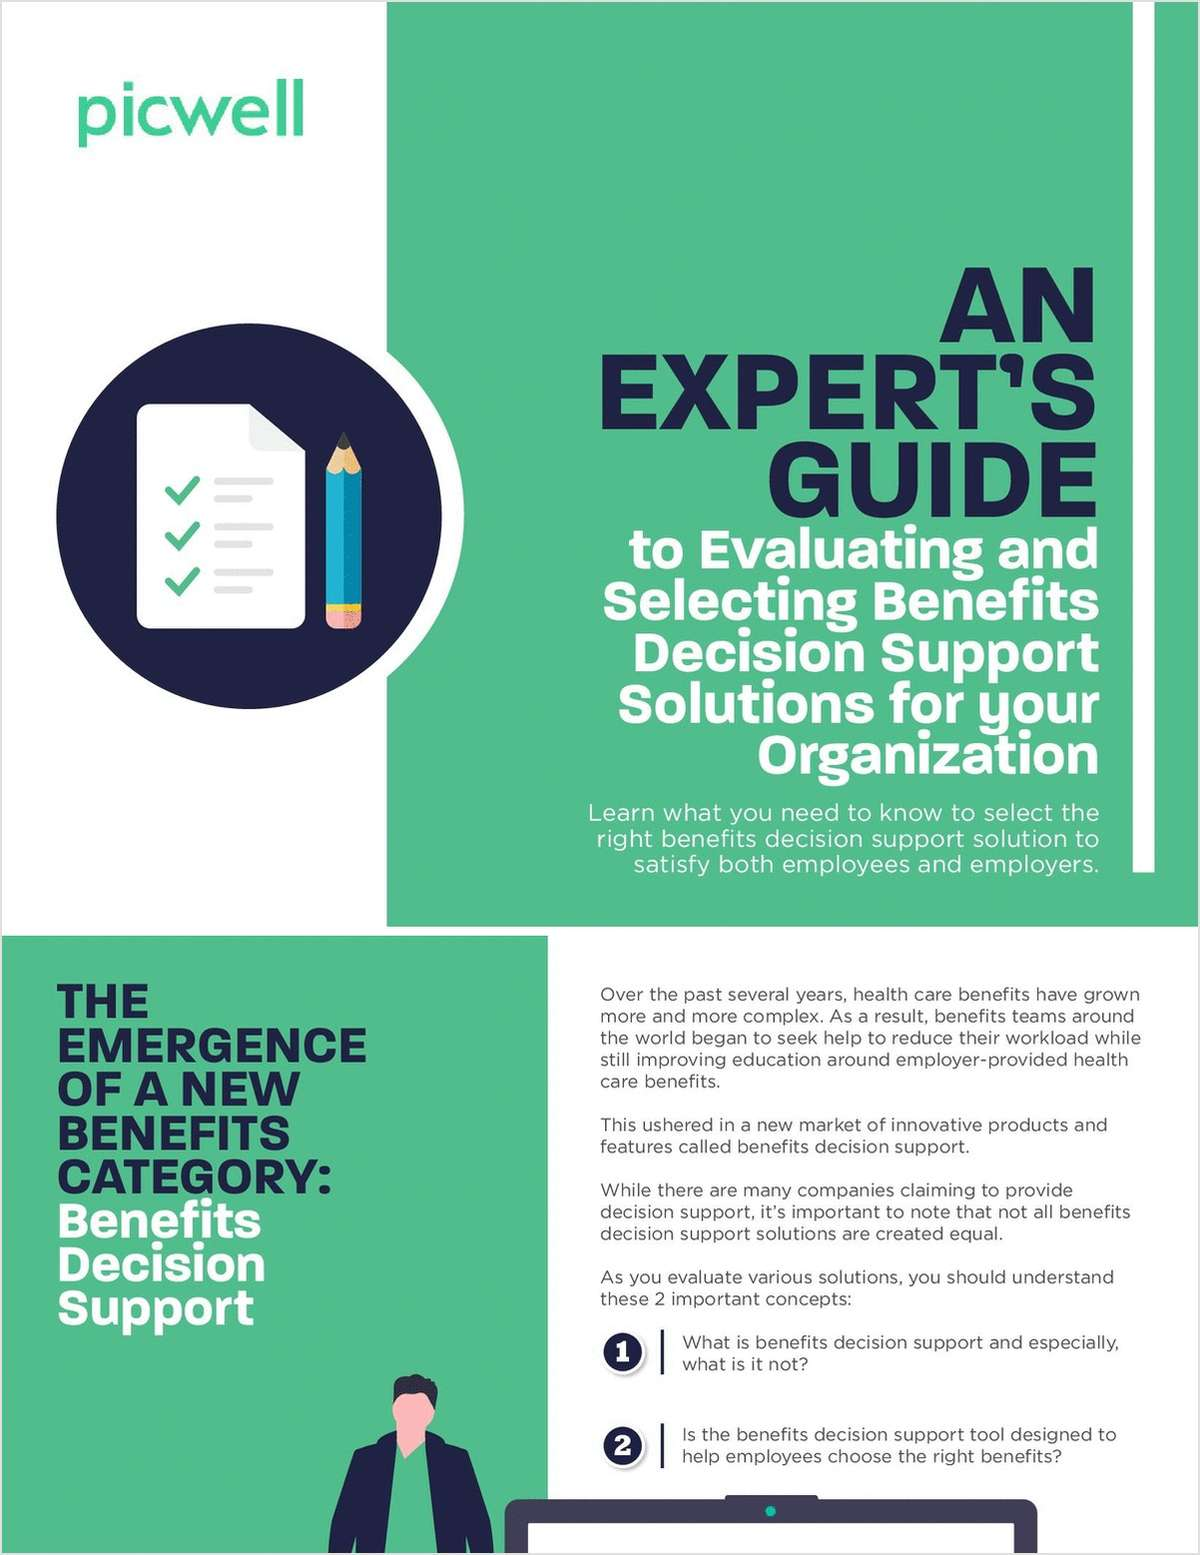 An Expert's Guide to Evaluating and Selecting Benefits Decision Support Solutions for Clients